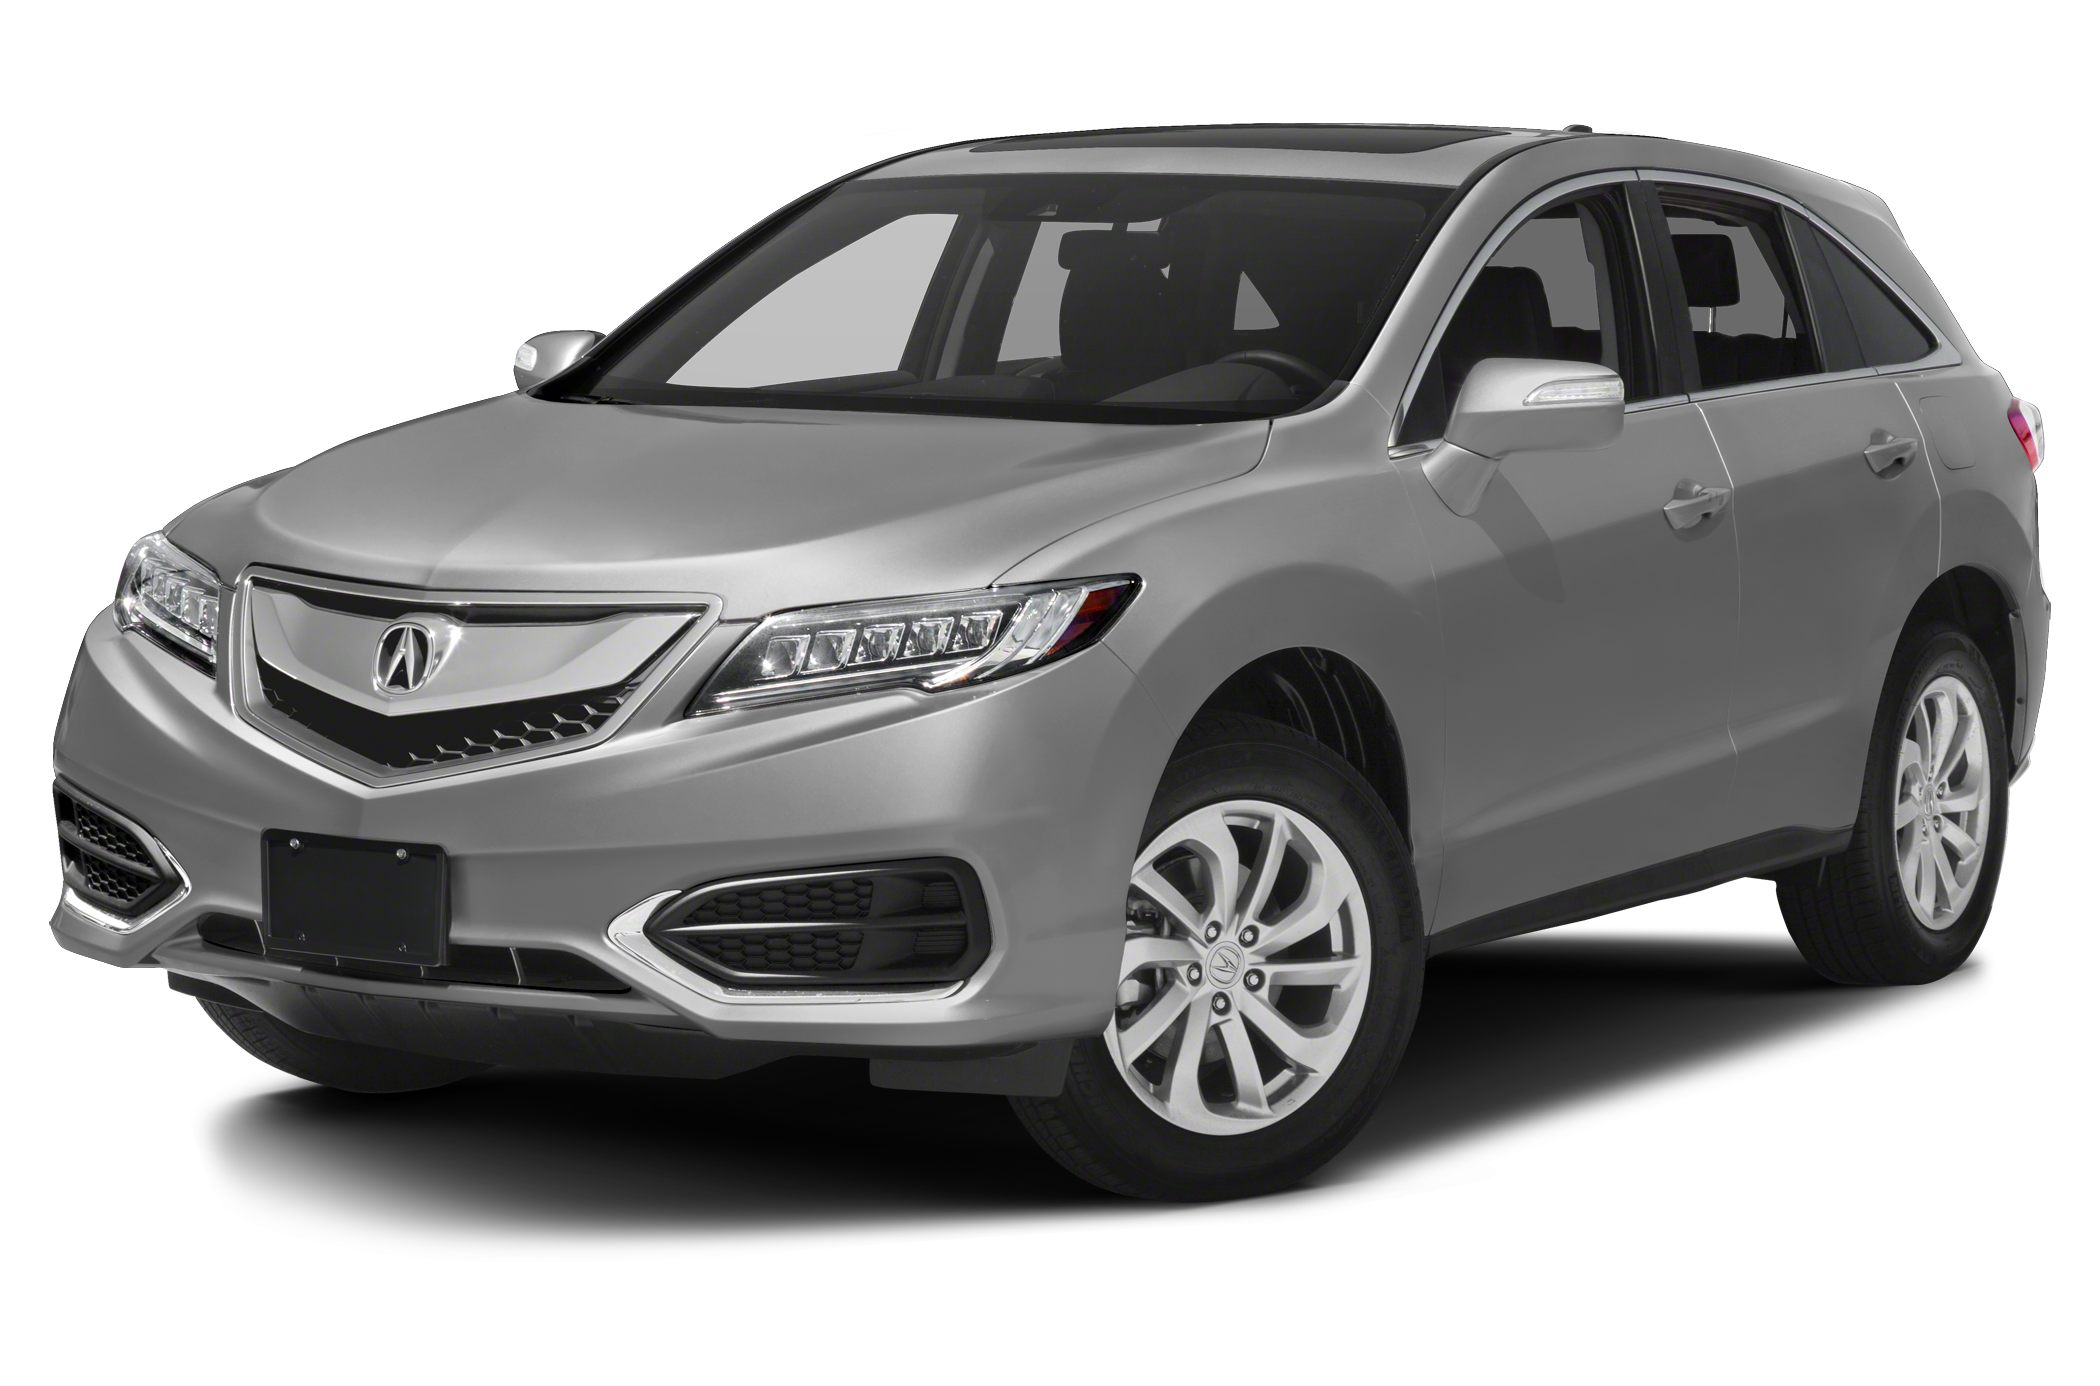 acura with wheels advance luxury on couples power savage rdx awd